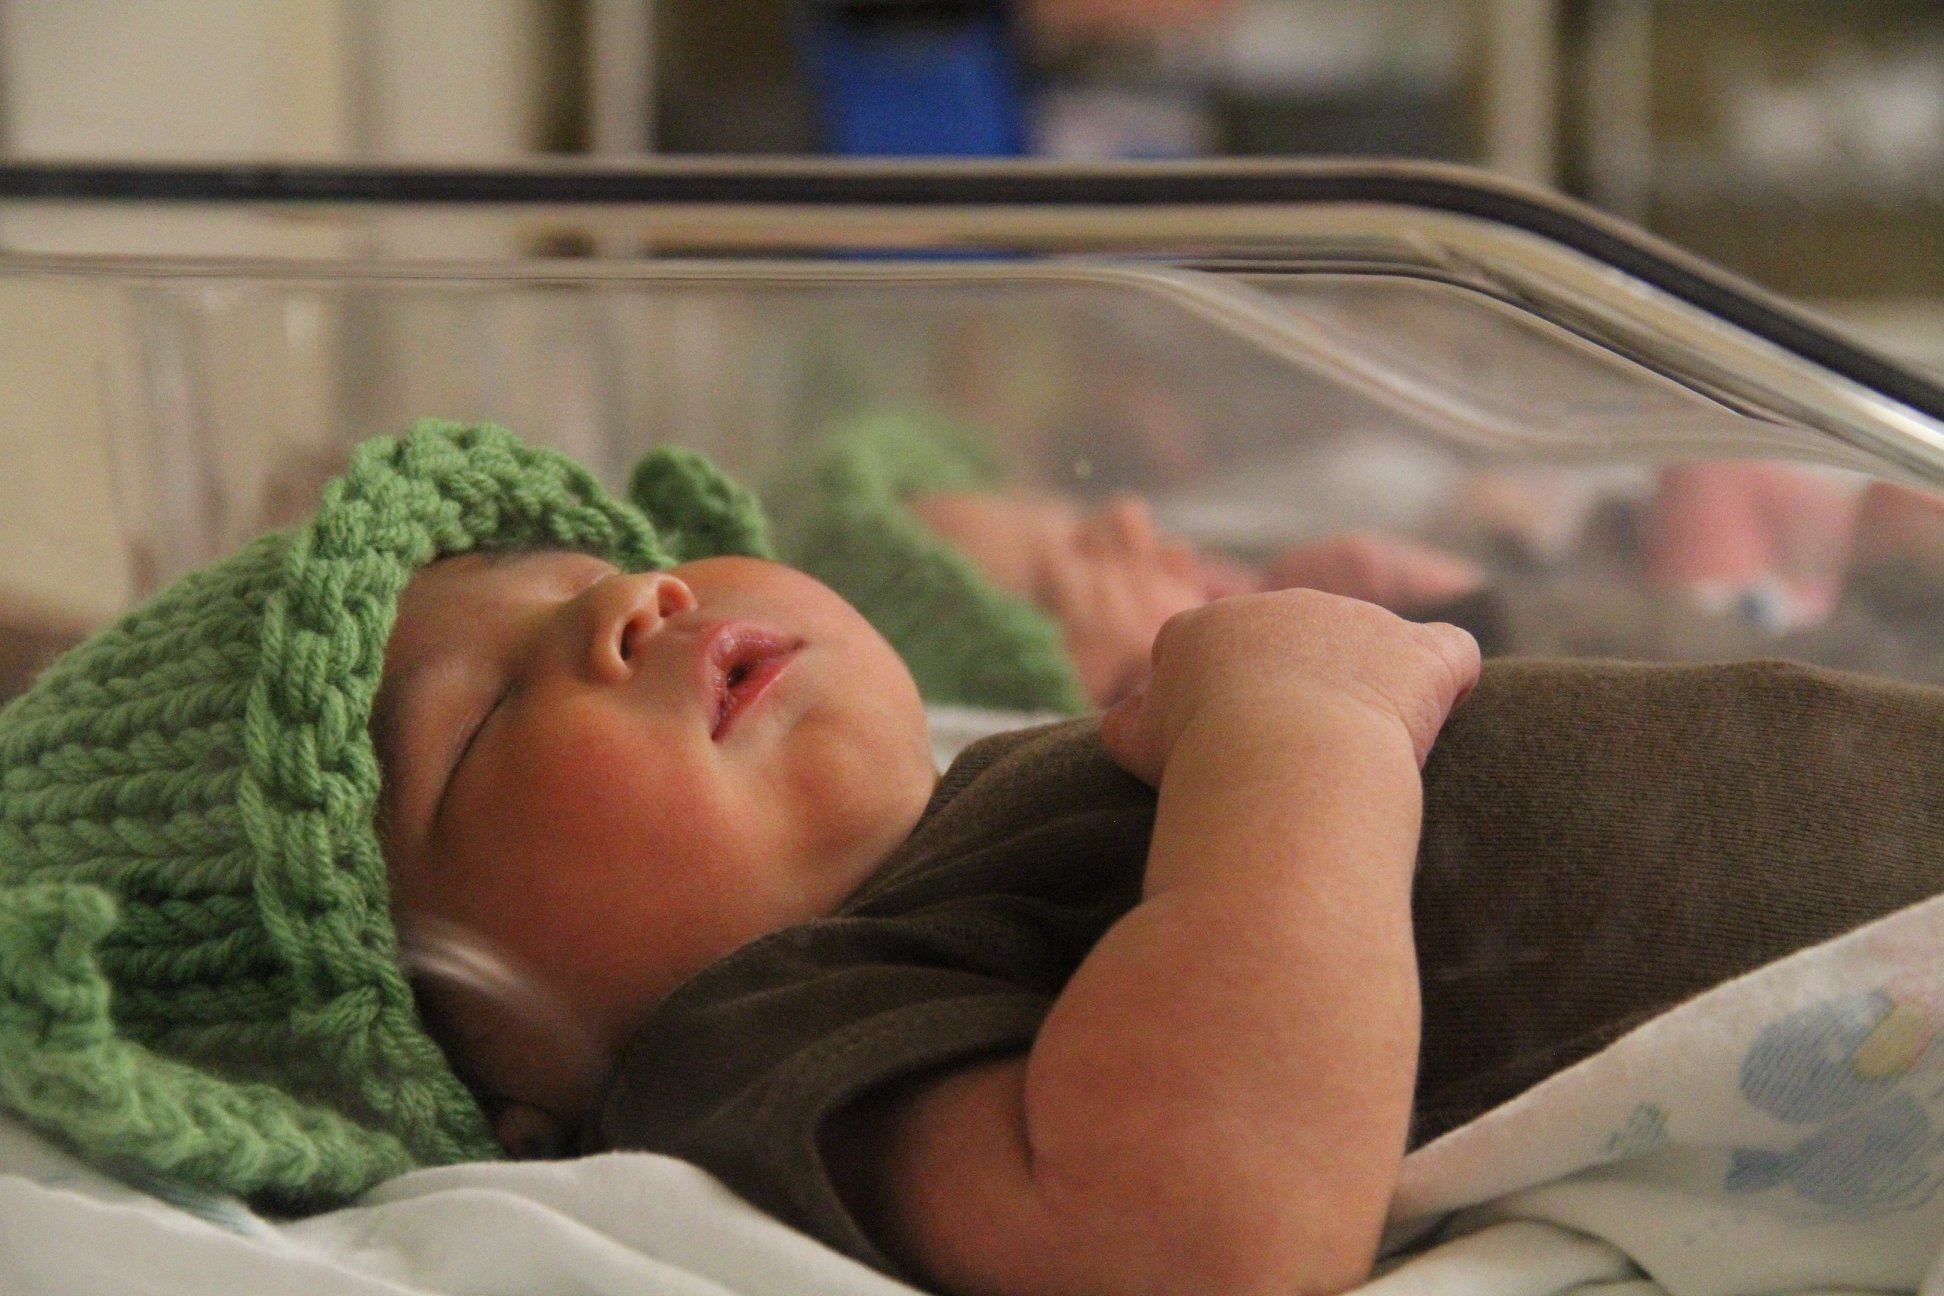 Newborns at Franciscan Health in Indianapolis donned 'Baby Yoda' hats in honor of the release of the newest Star Wars movie.